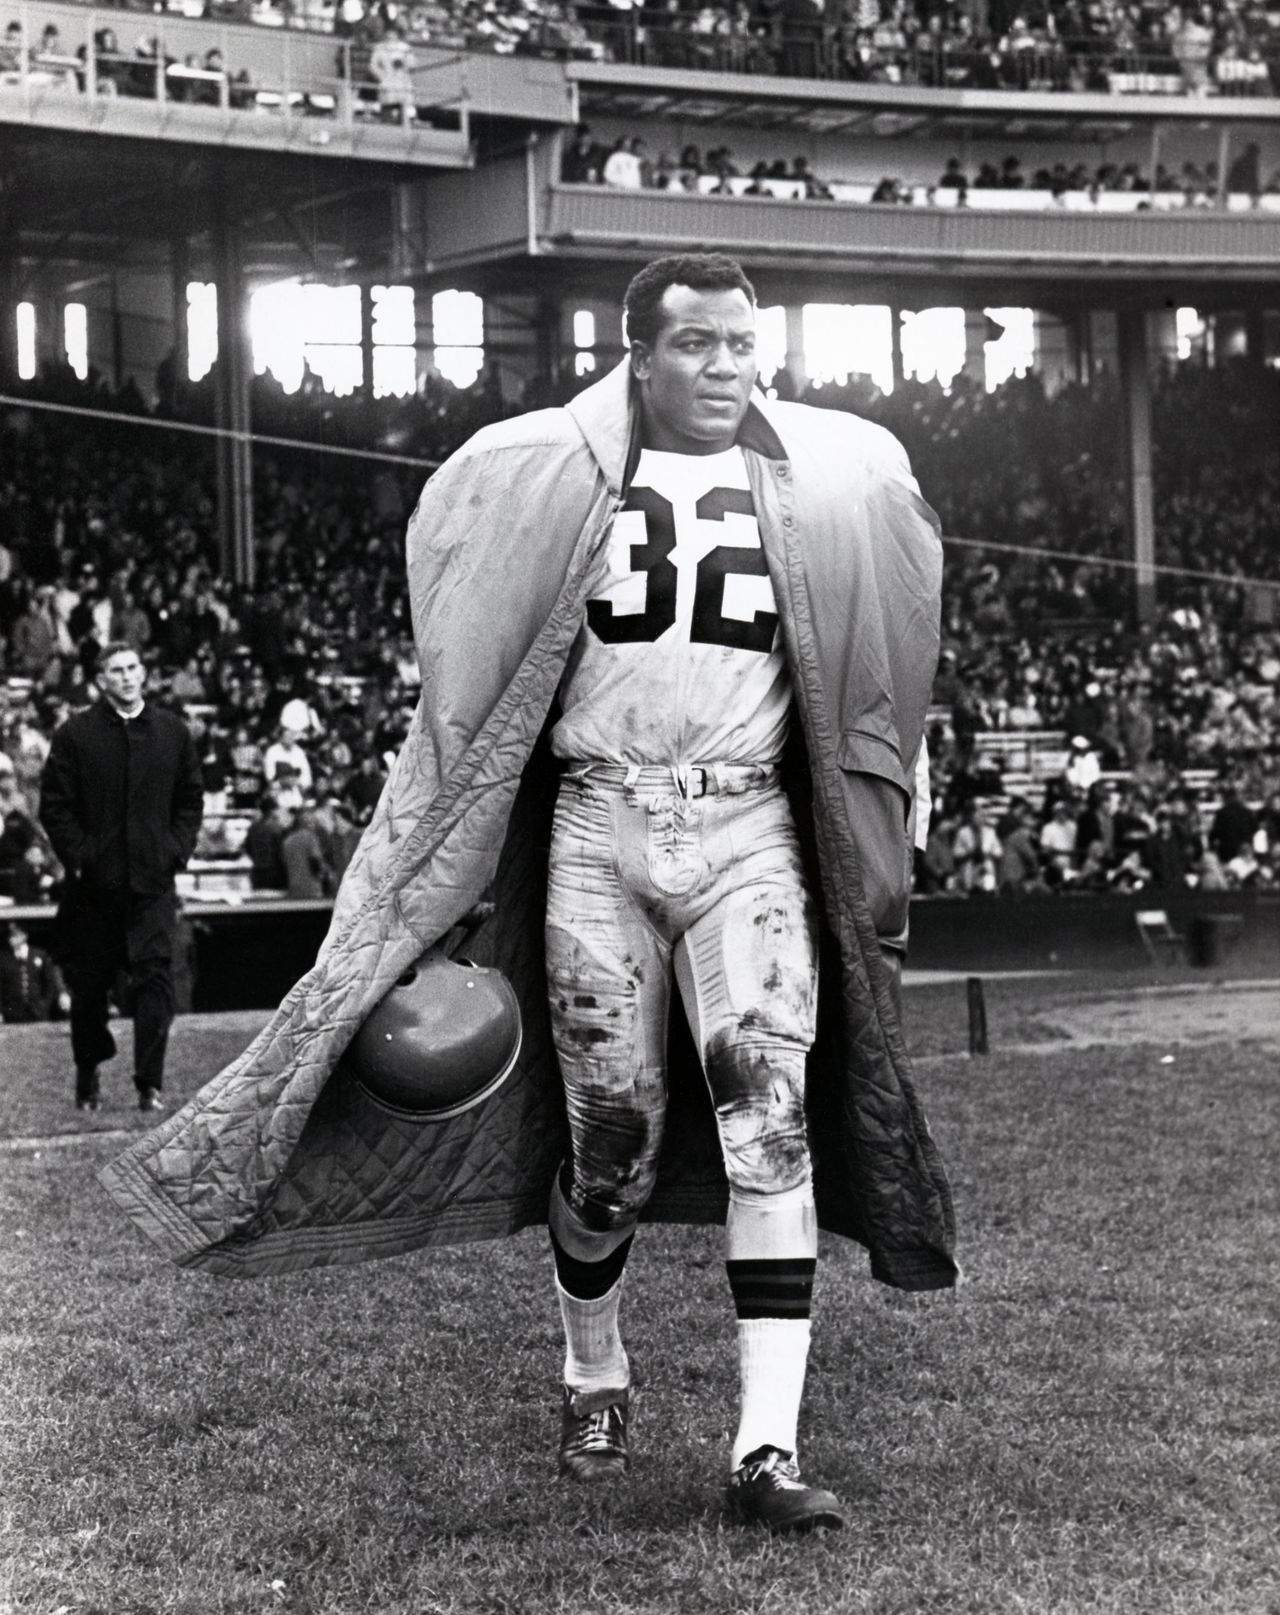 Cleveland Browns fullback Jim Brown (32) tries to stay warm as he looks on from the sideline in Cleveland Stadium circa 1963.